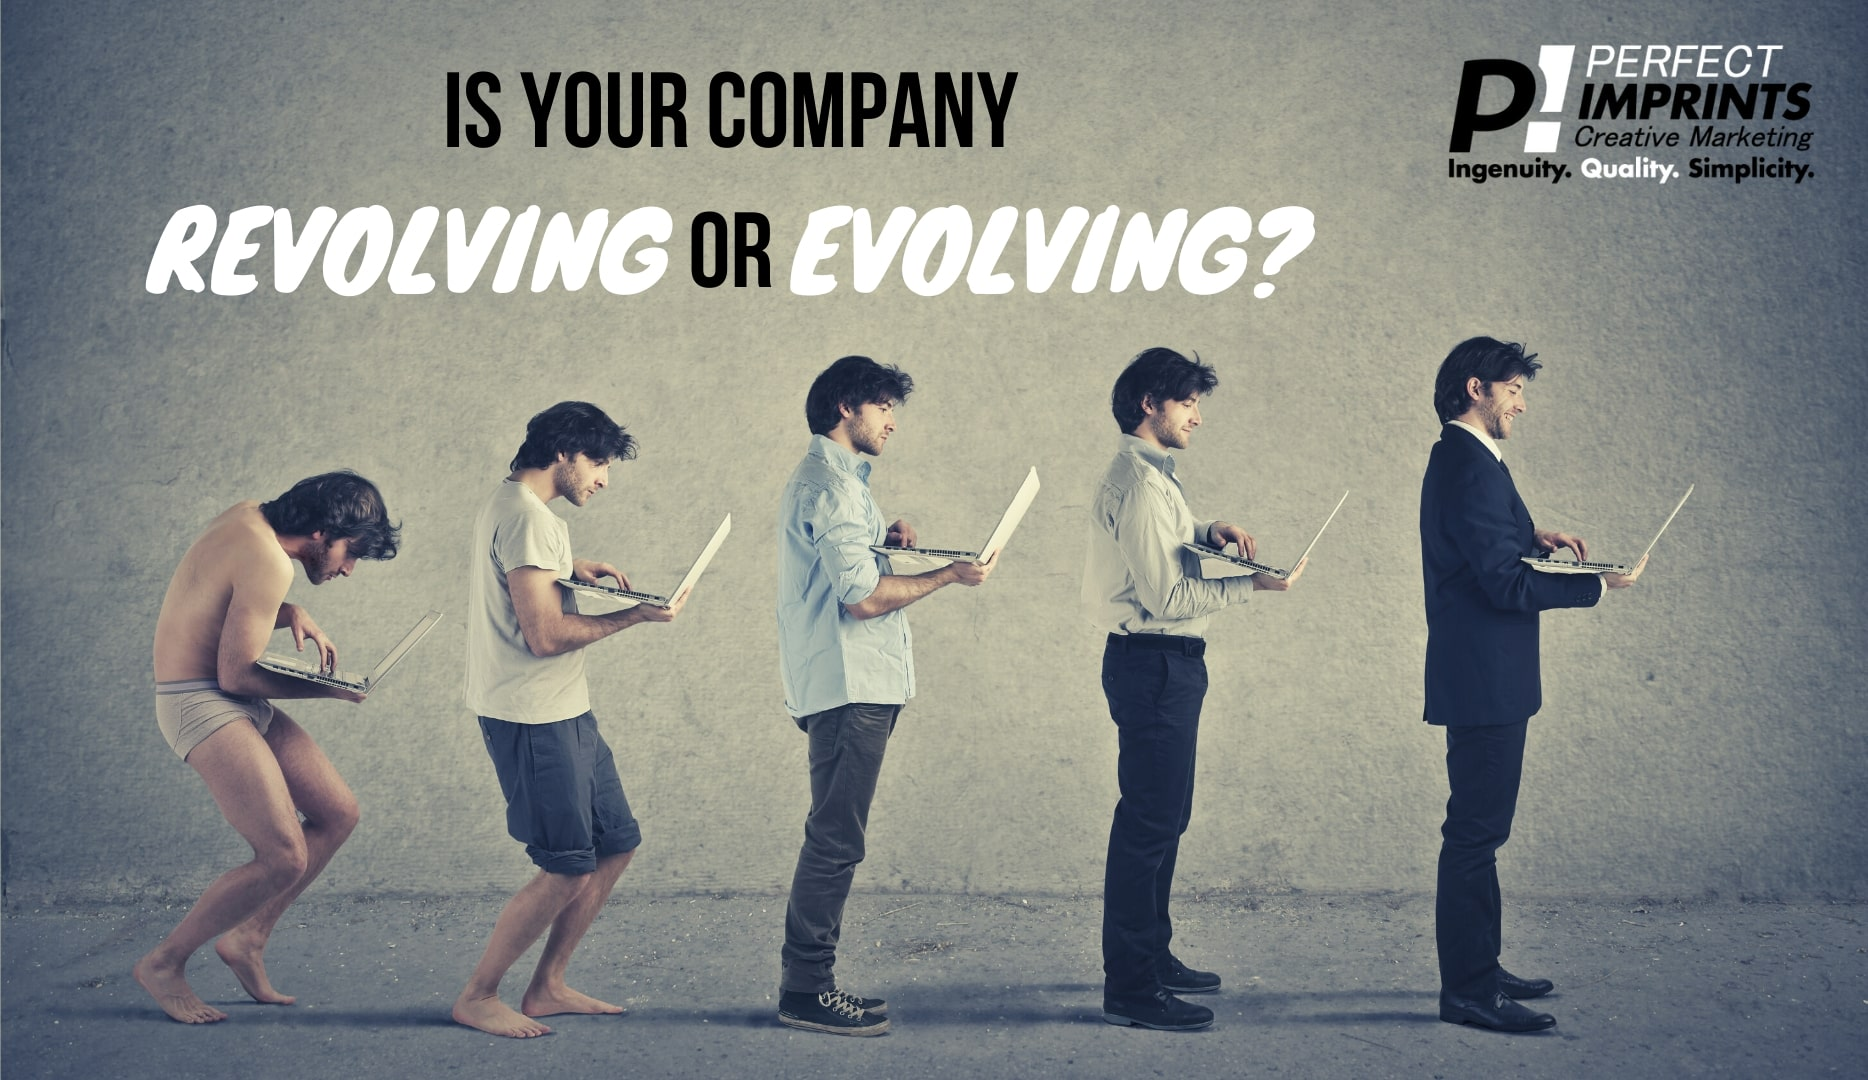 Is Your Company Revolving or Evolving?